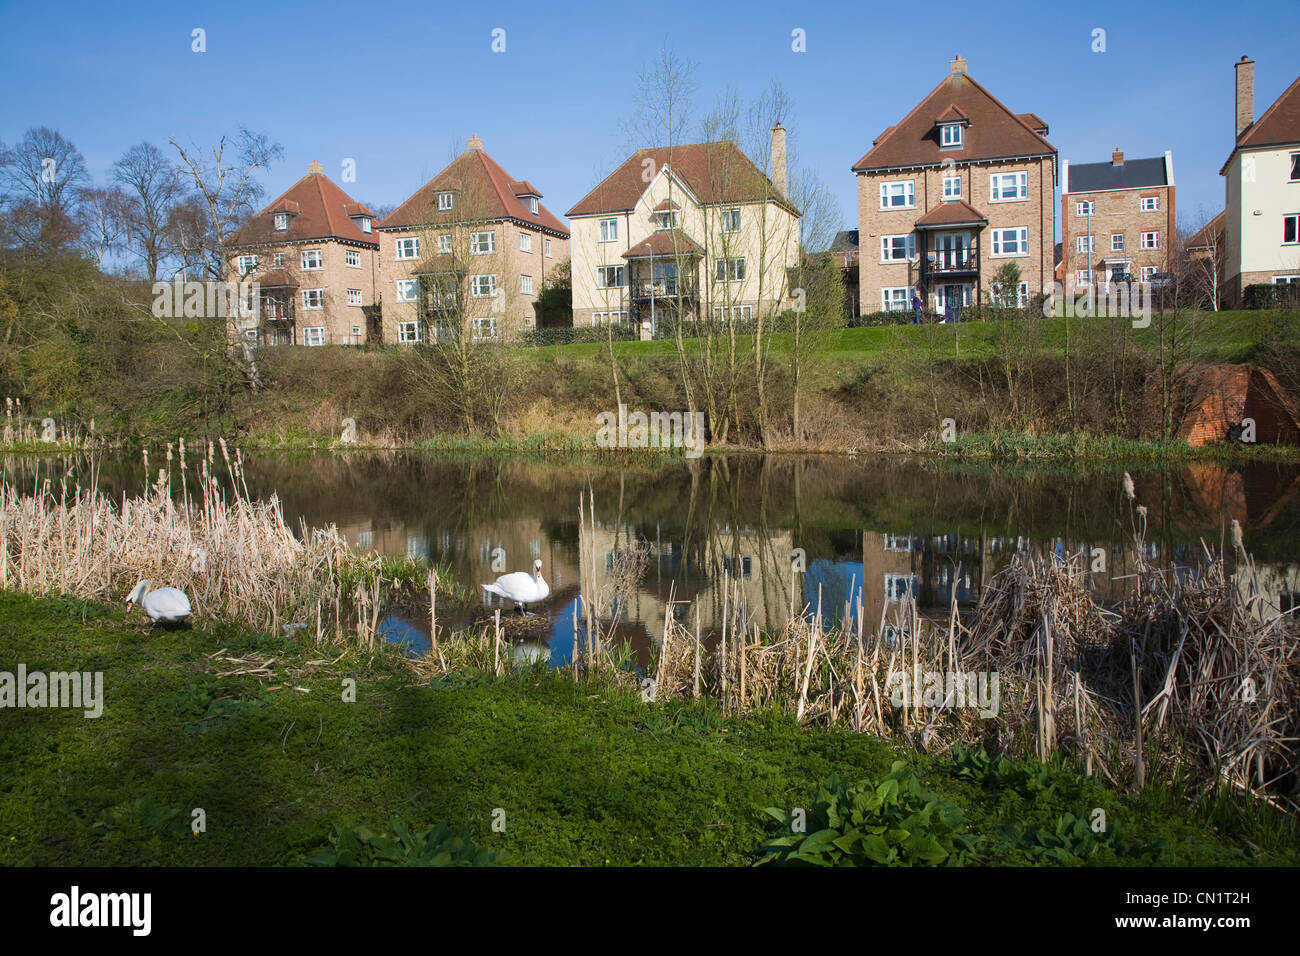 New housing development by River Colne Colchester Essex England reflected in water - Stock Image